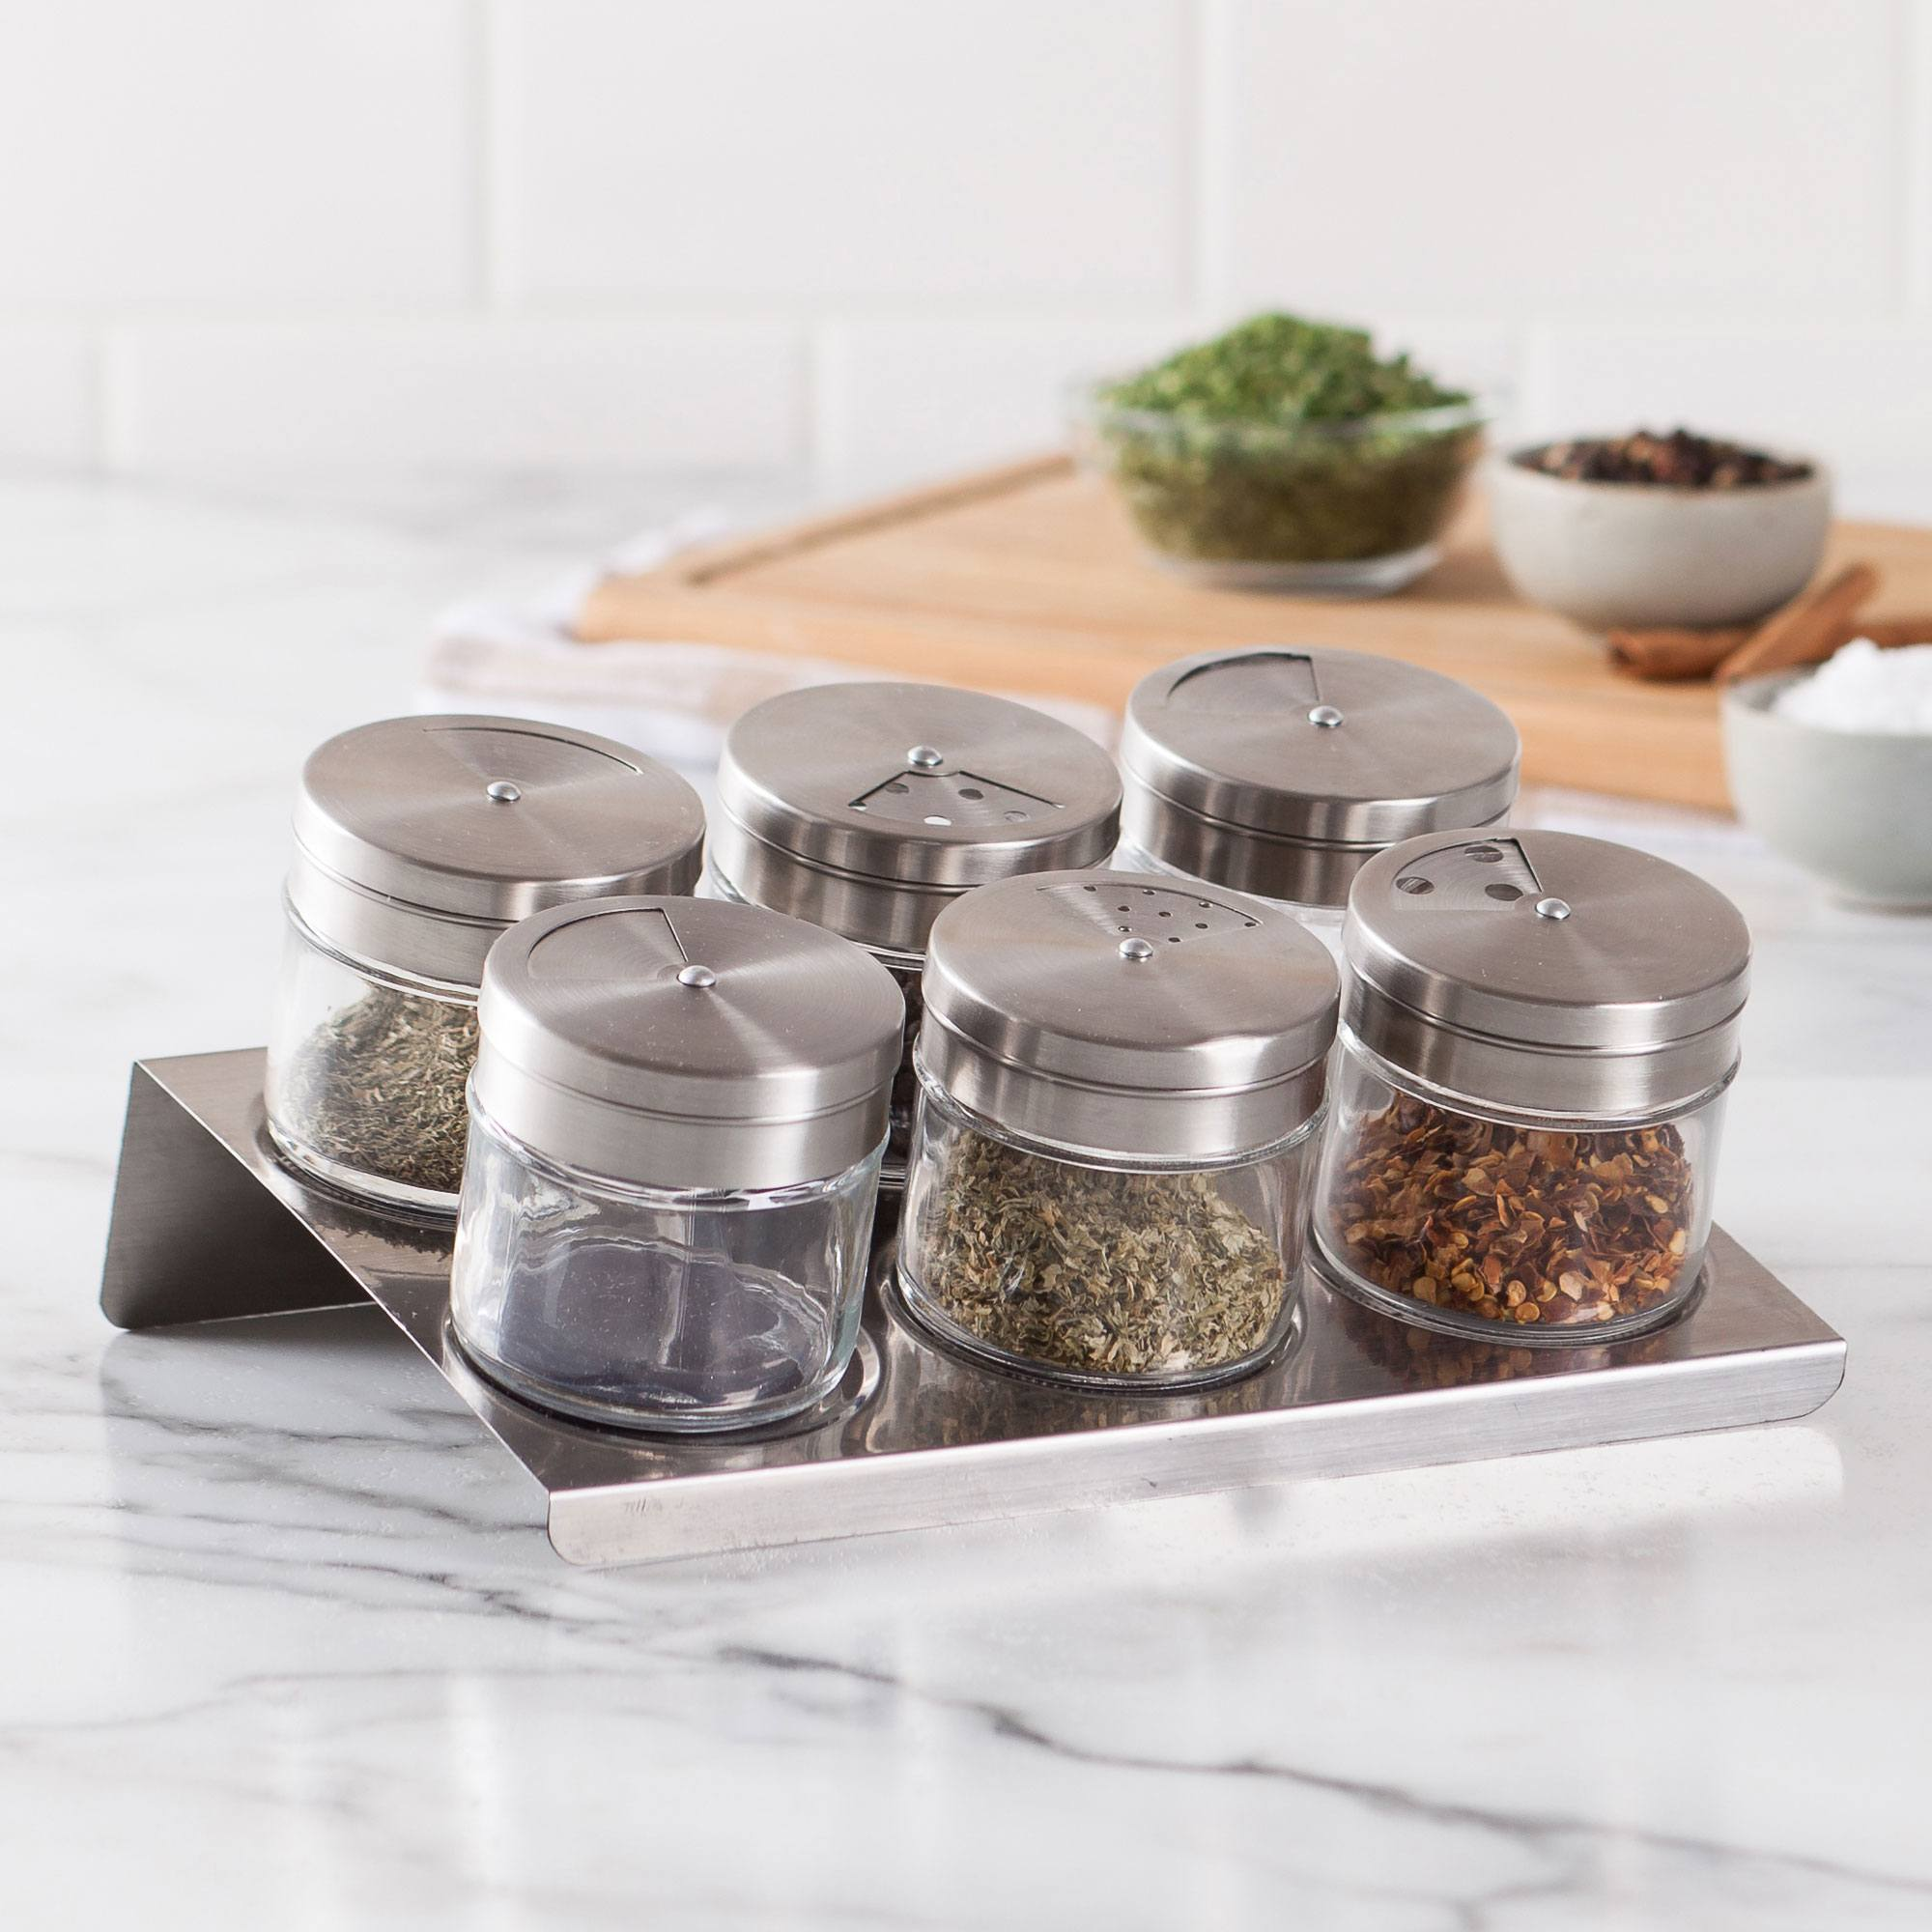 6 stainless steel top spice racks attached to magnetic stainless steel sheet